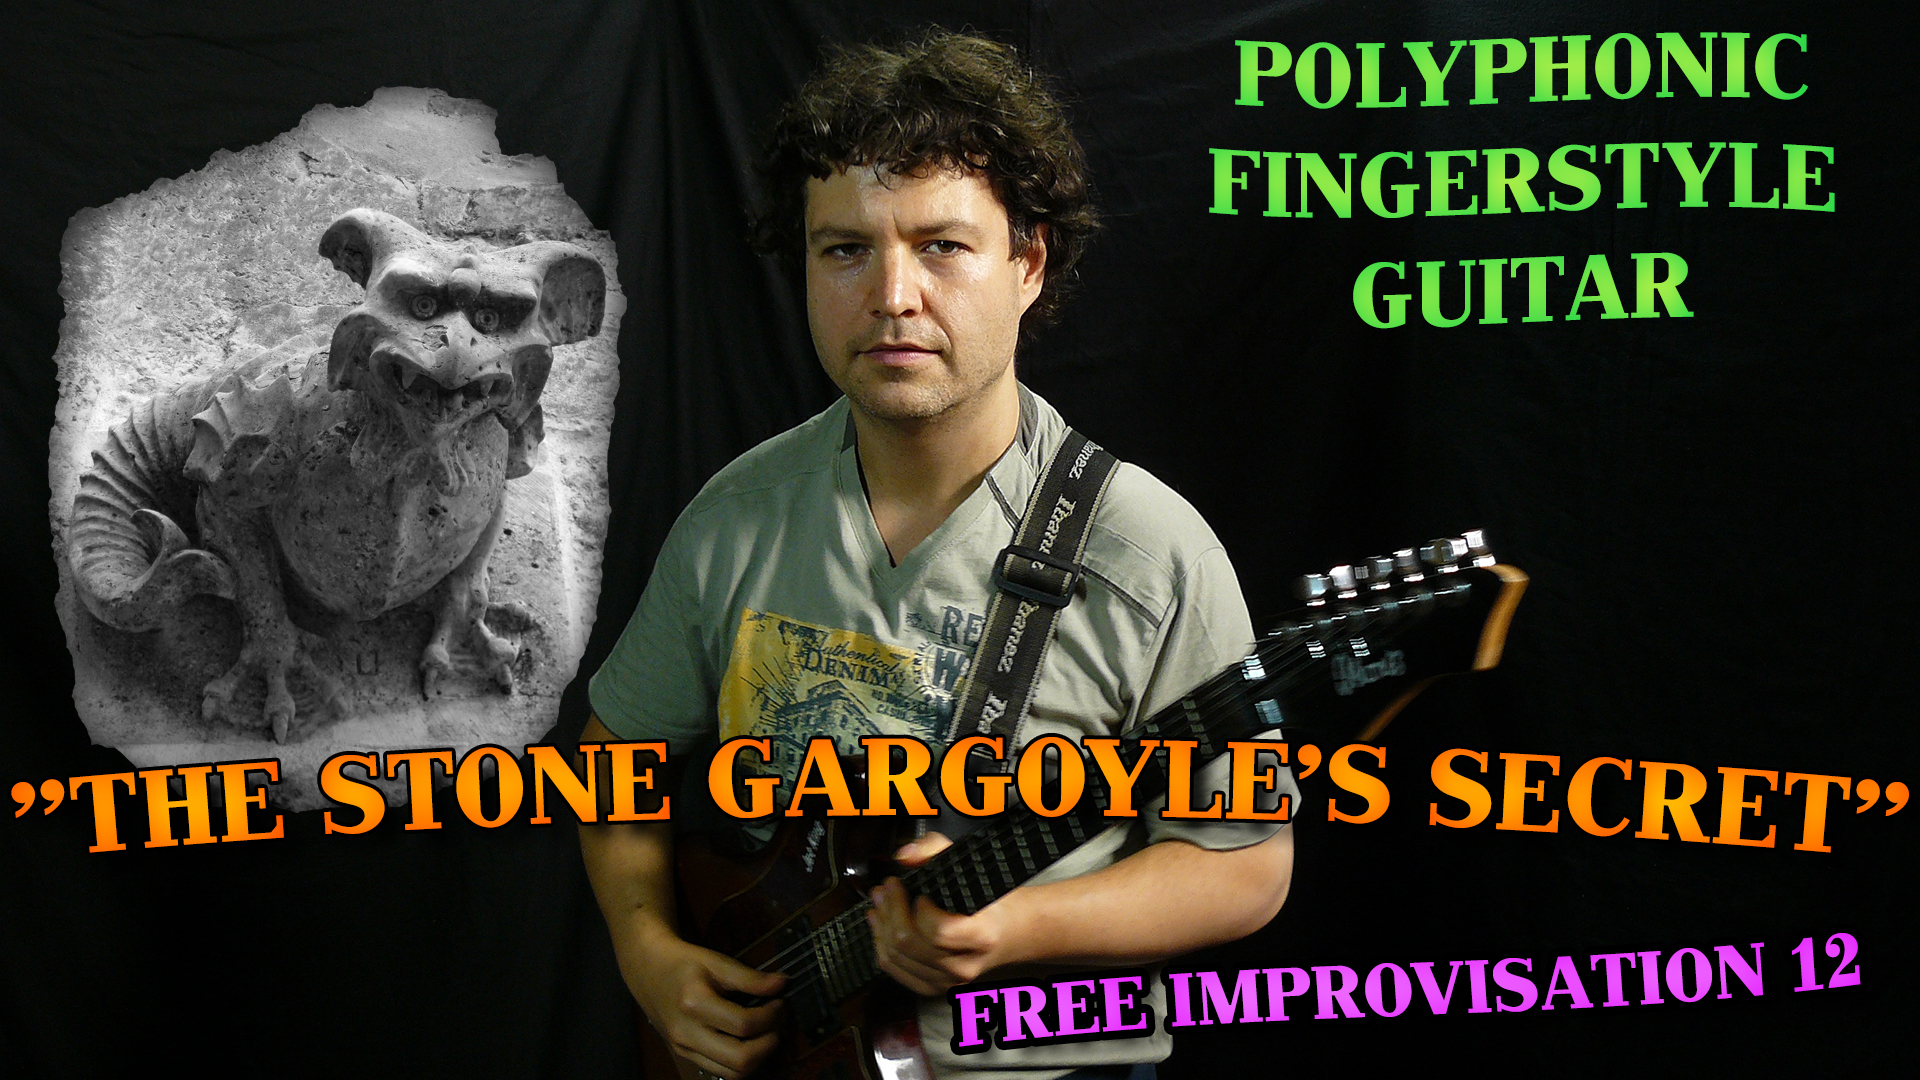 the stone gargoyle's secret - fingerstyle free improvisation guitar